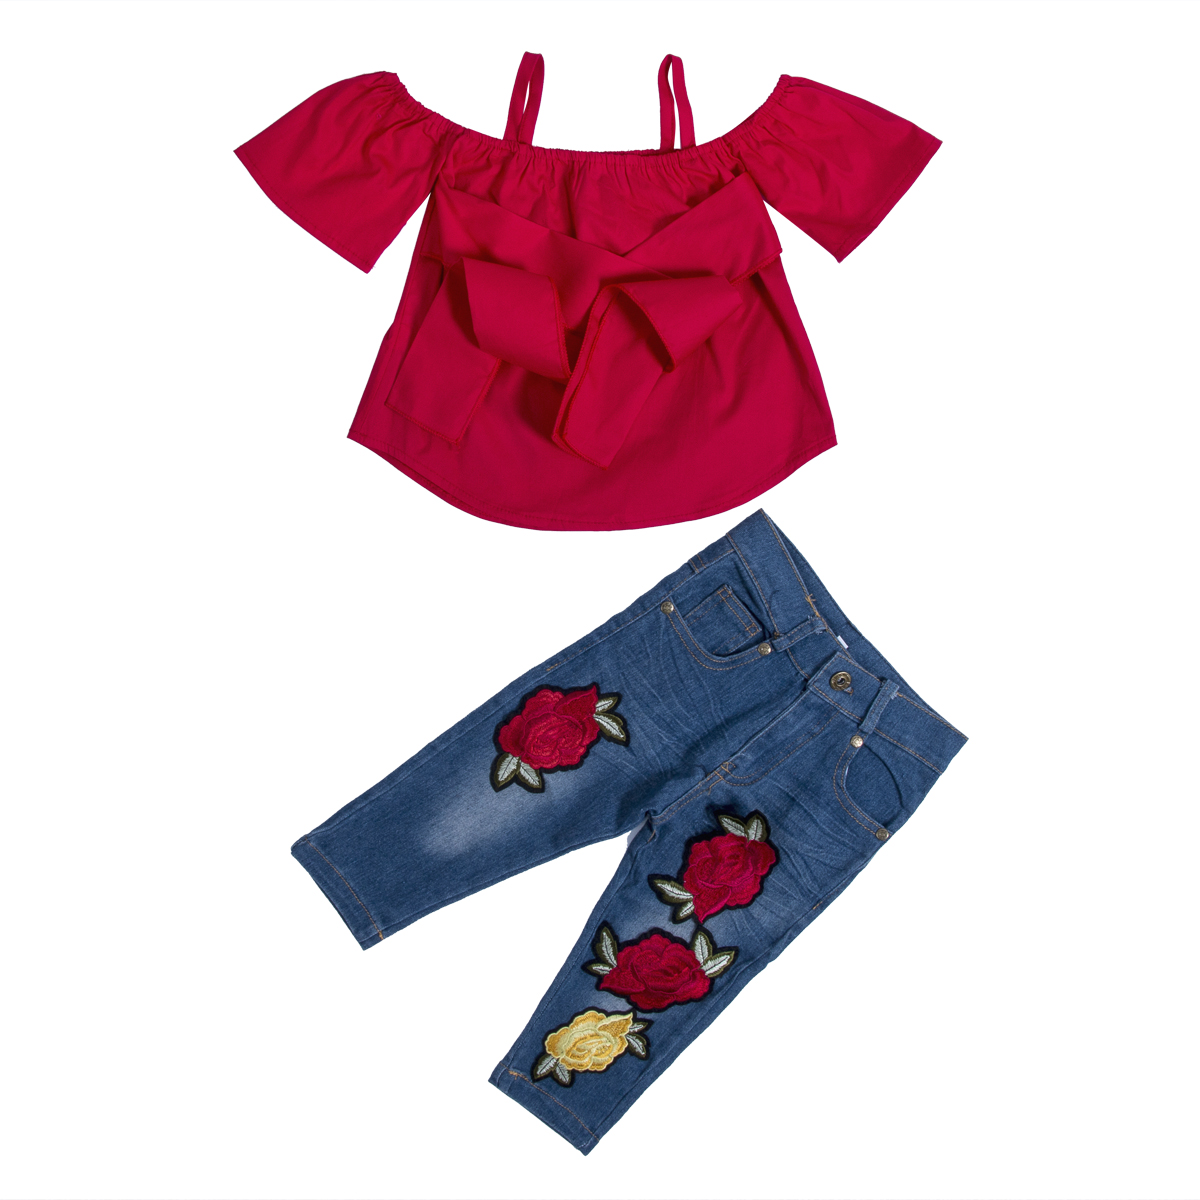 2pcs Kids Baby Girls Fashion Outfits Long Sleeve Floral Tops+Denim Pants Clothes